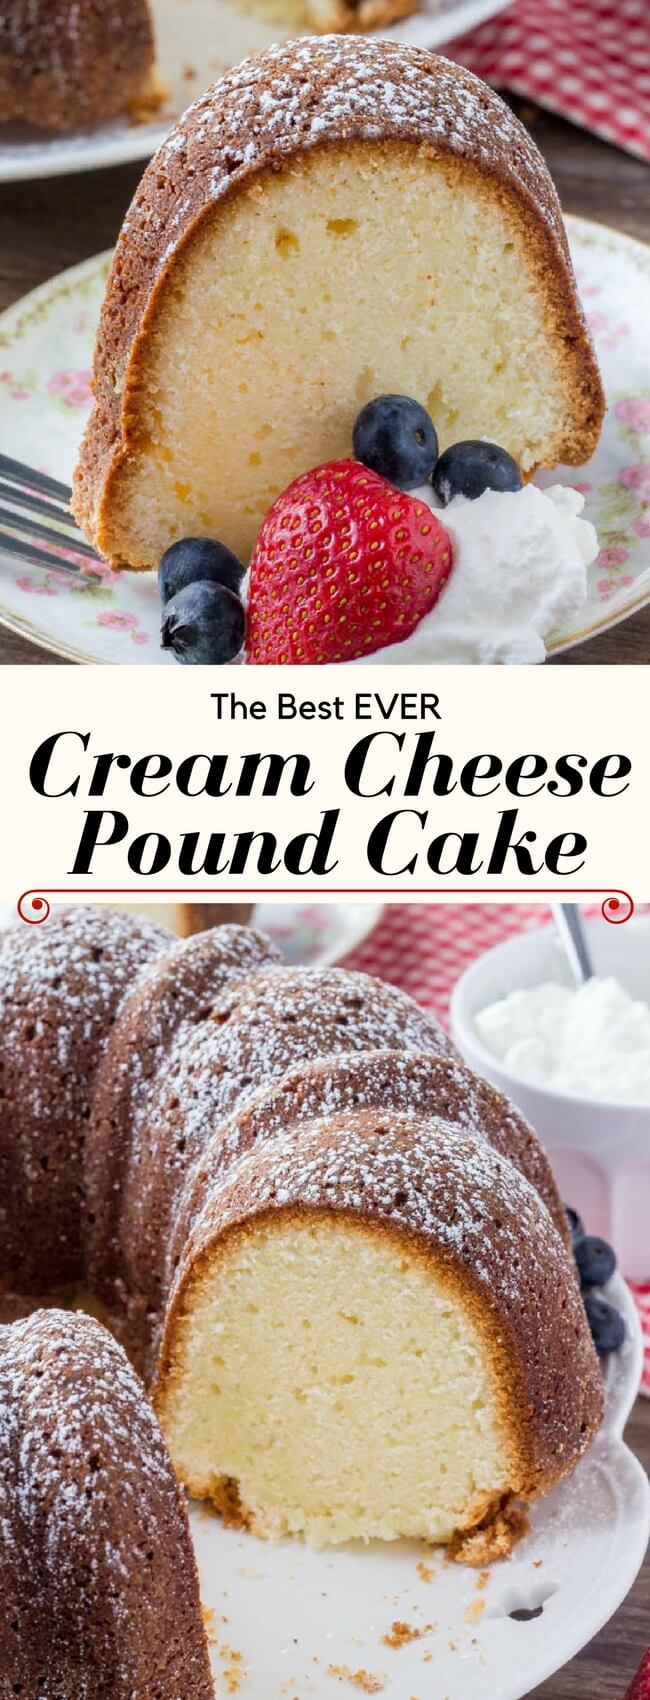 Cream cheese pound cake is rich, buttery, moist and completely delicious. With only 6 ingredients, it's an easy pound cake recipe that never disappoints. #poundcake #cake #baking #recipes